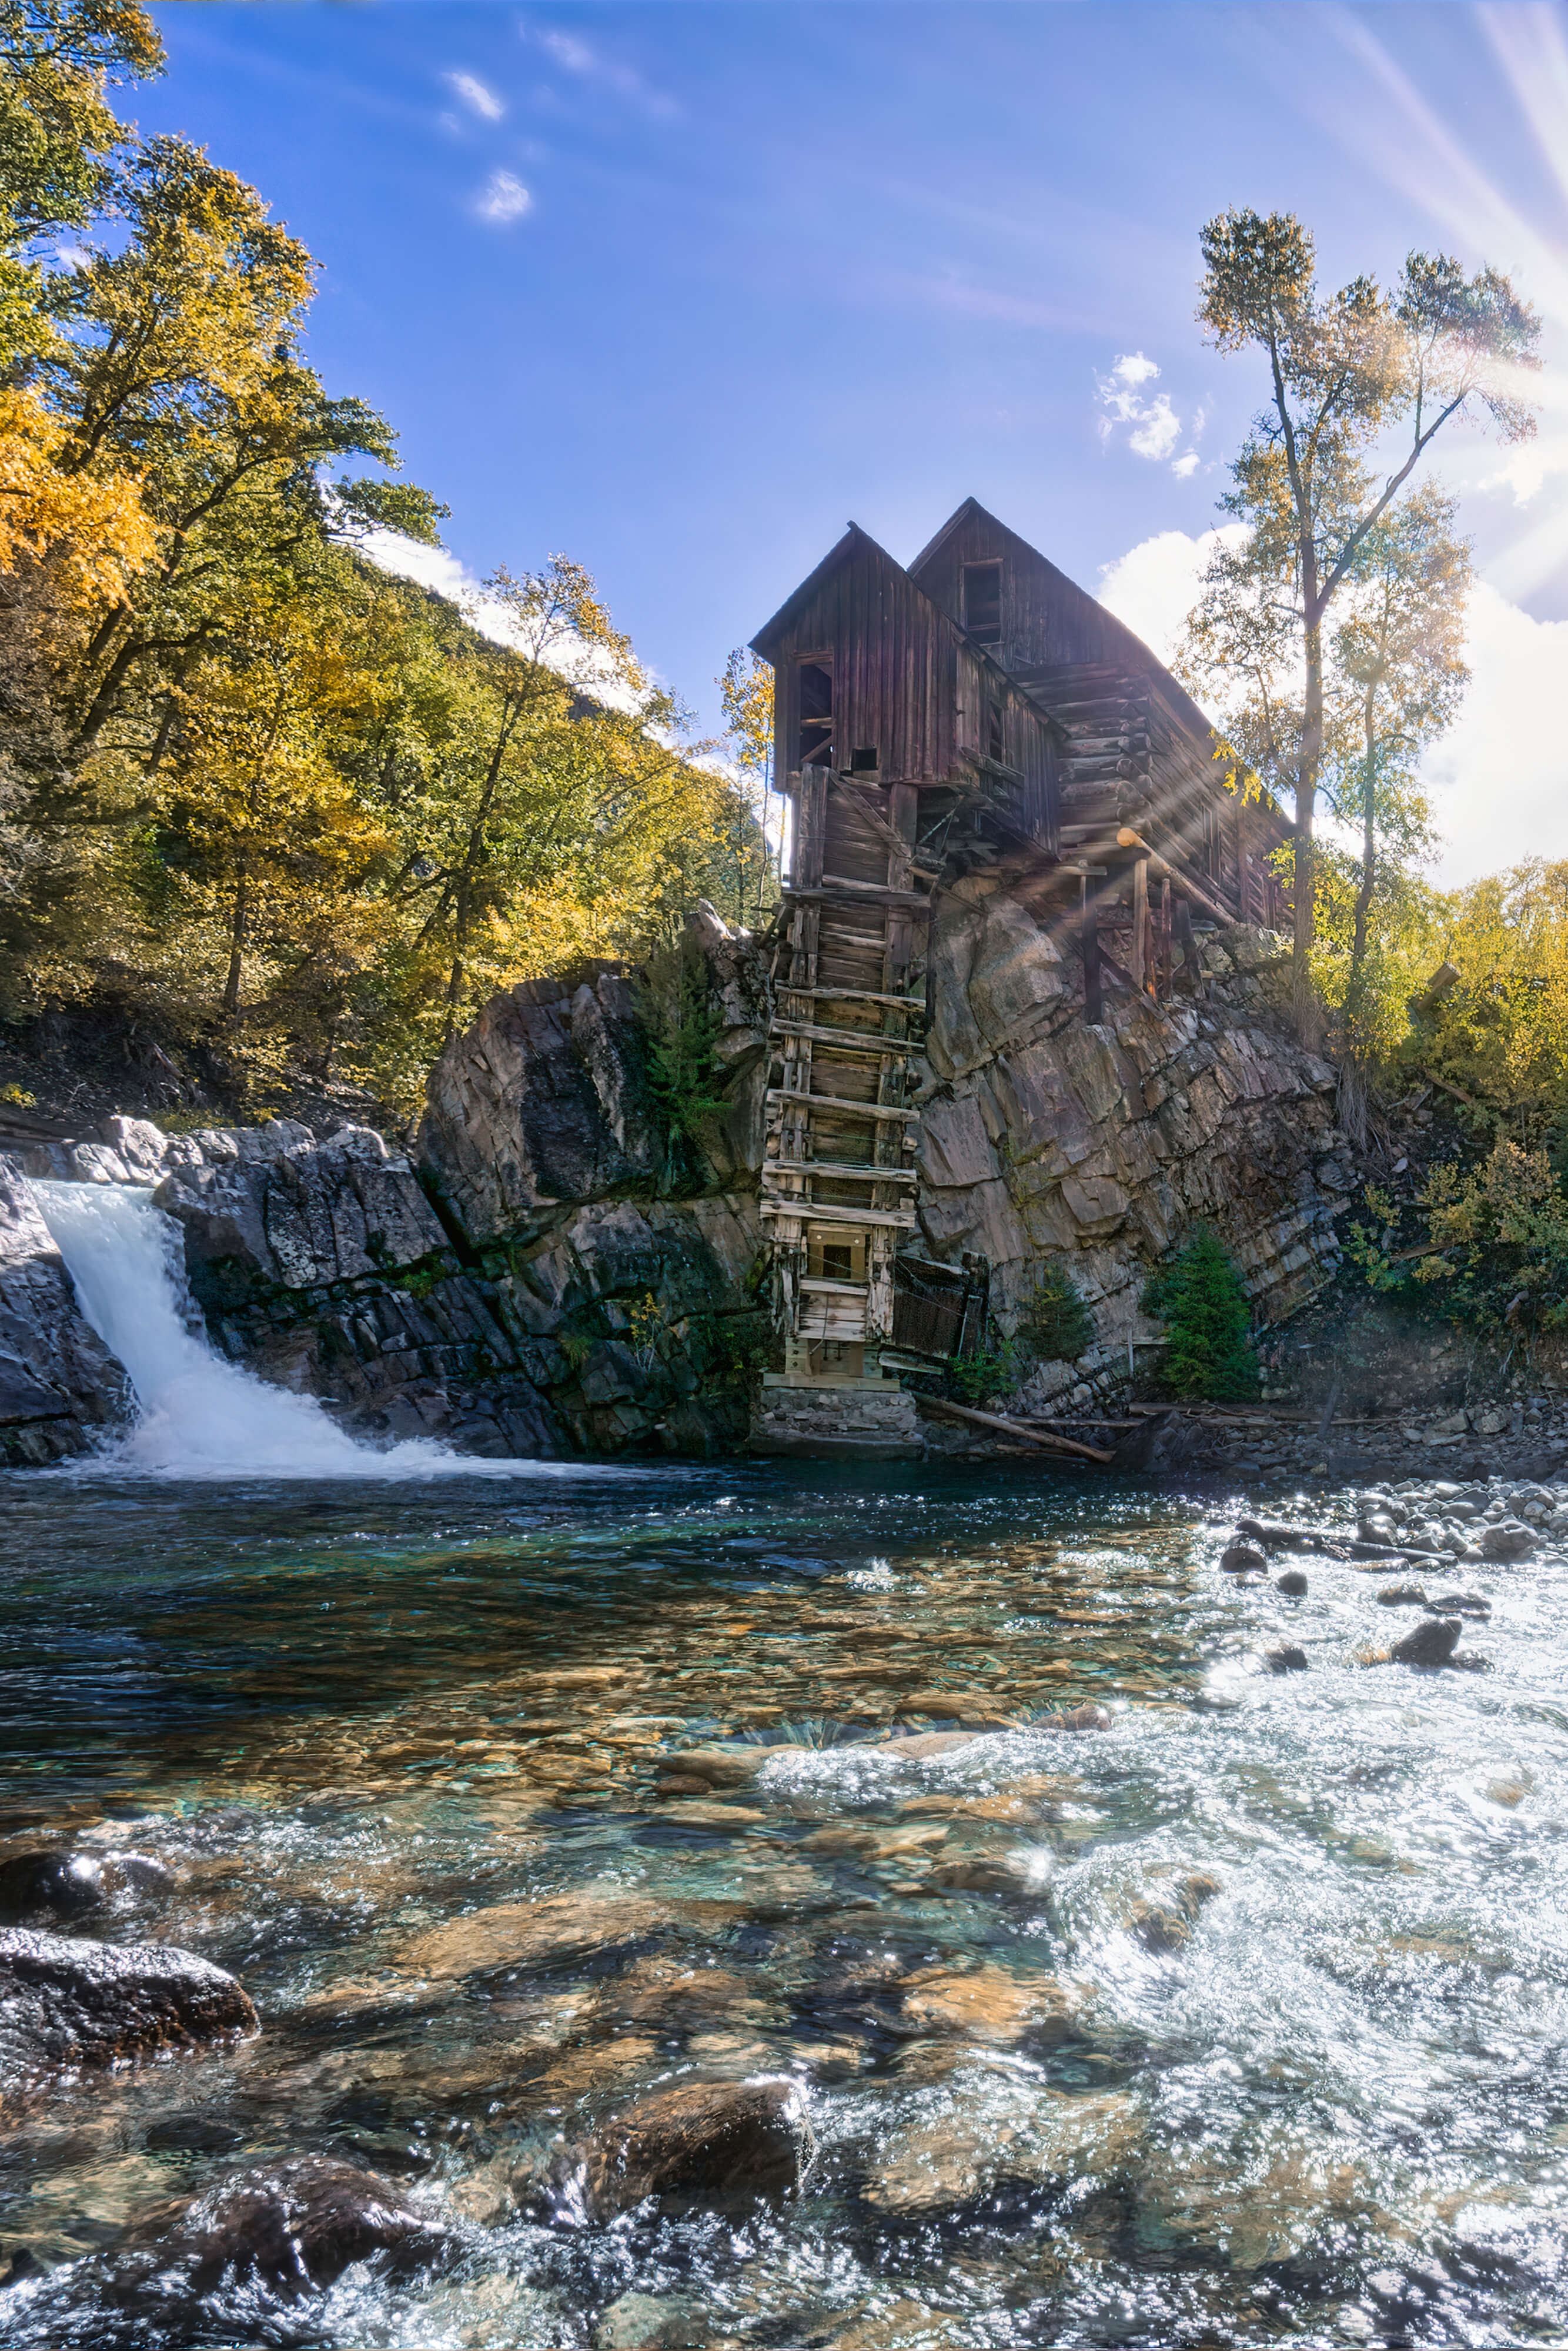 Photographers visiting Colorado will want to see and photograph Crystal Mill. Getting there and photographing from the best spots for amazing photos.   autumn scenery | photography | fall in colorado | Colorado